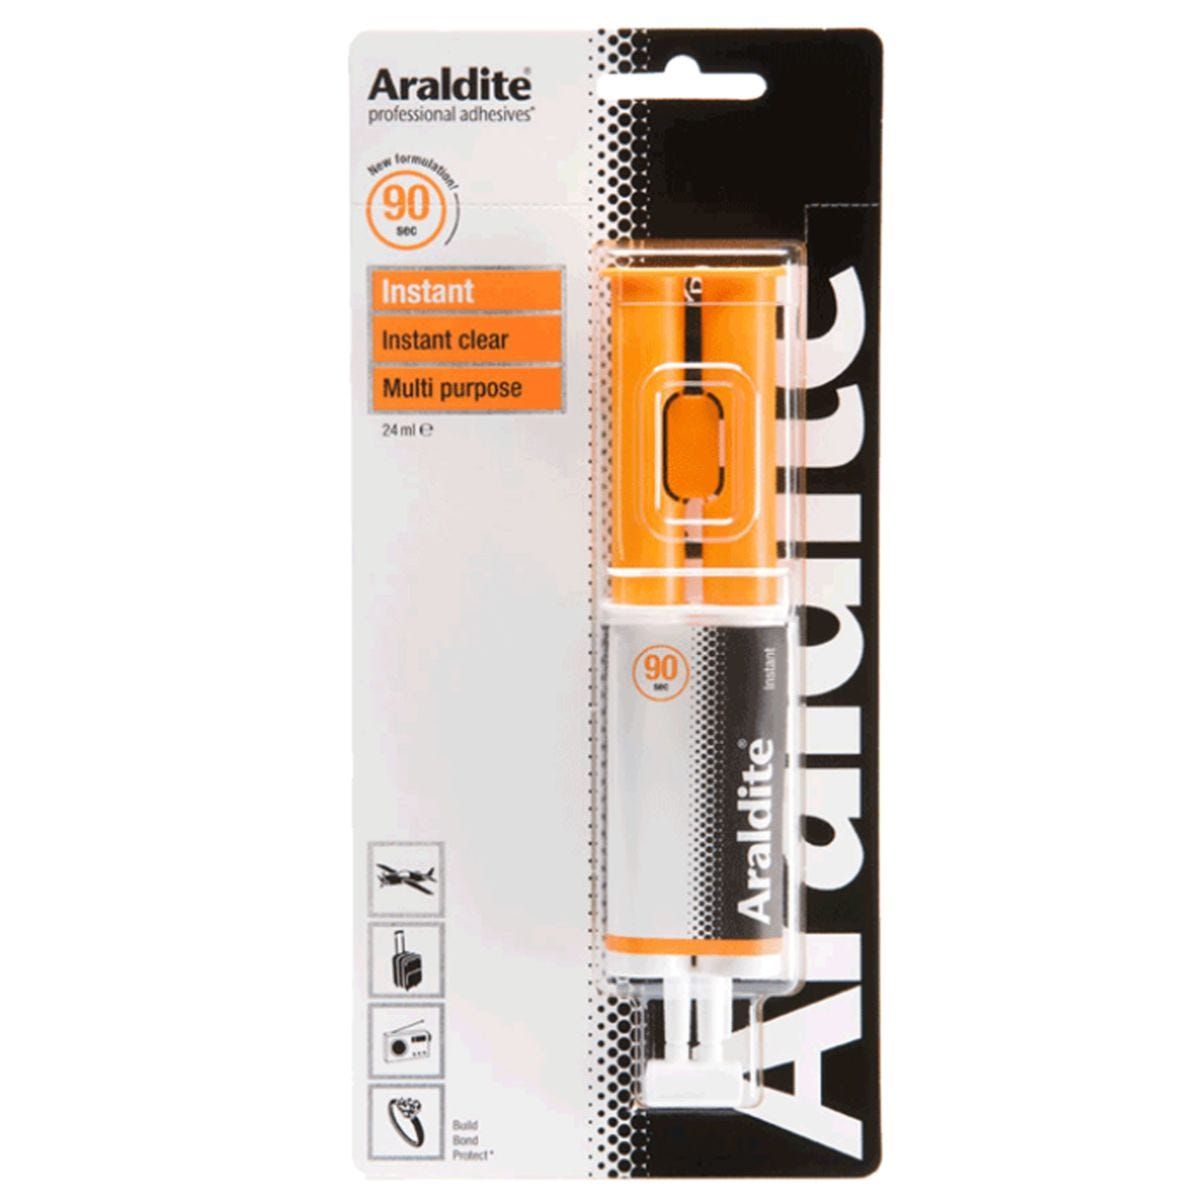 Araldite Instant 90 Second Epoxy Glue - 24ml Syringe